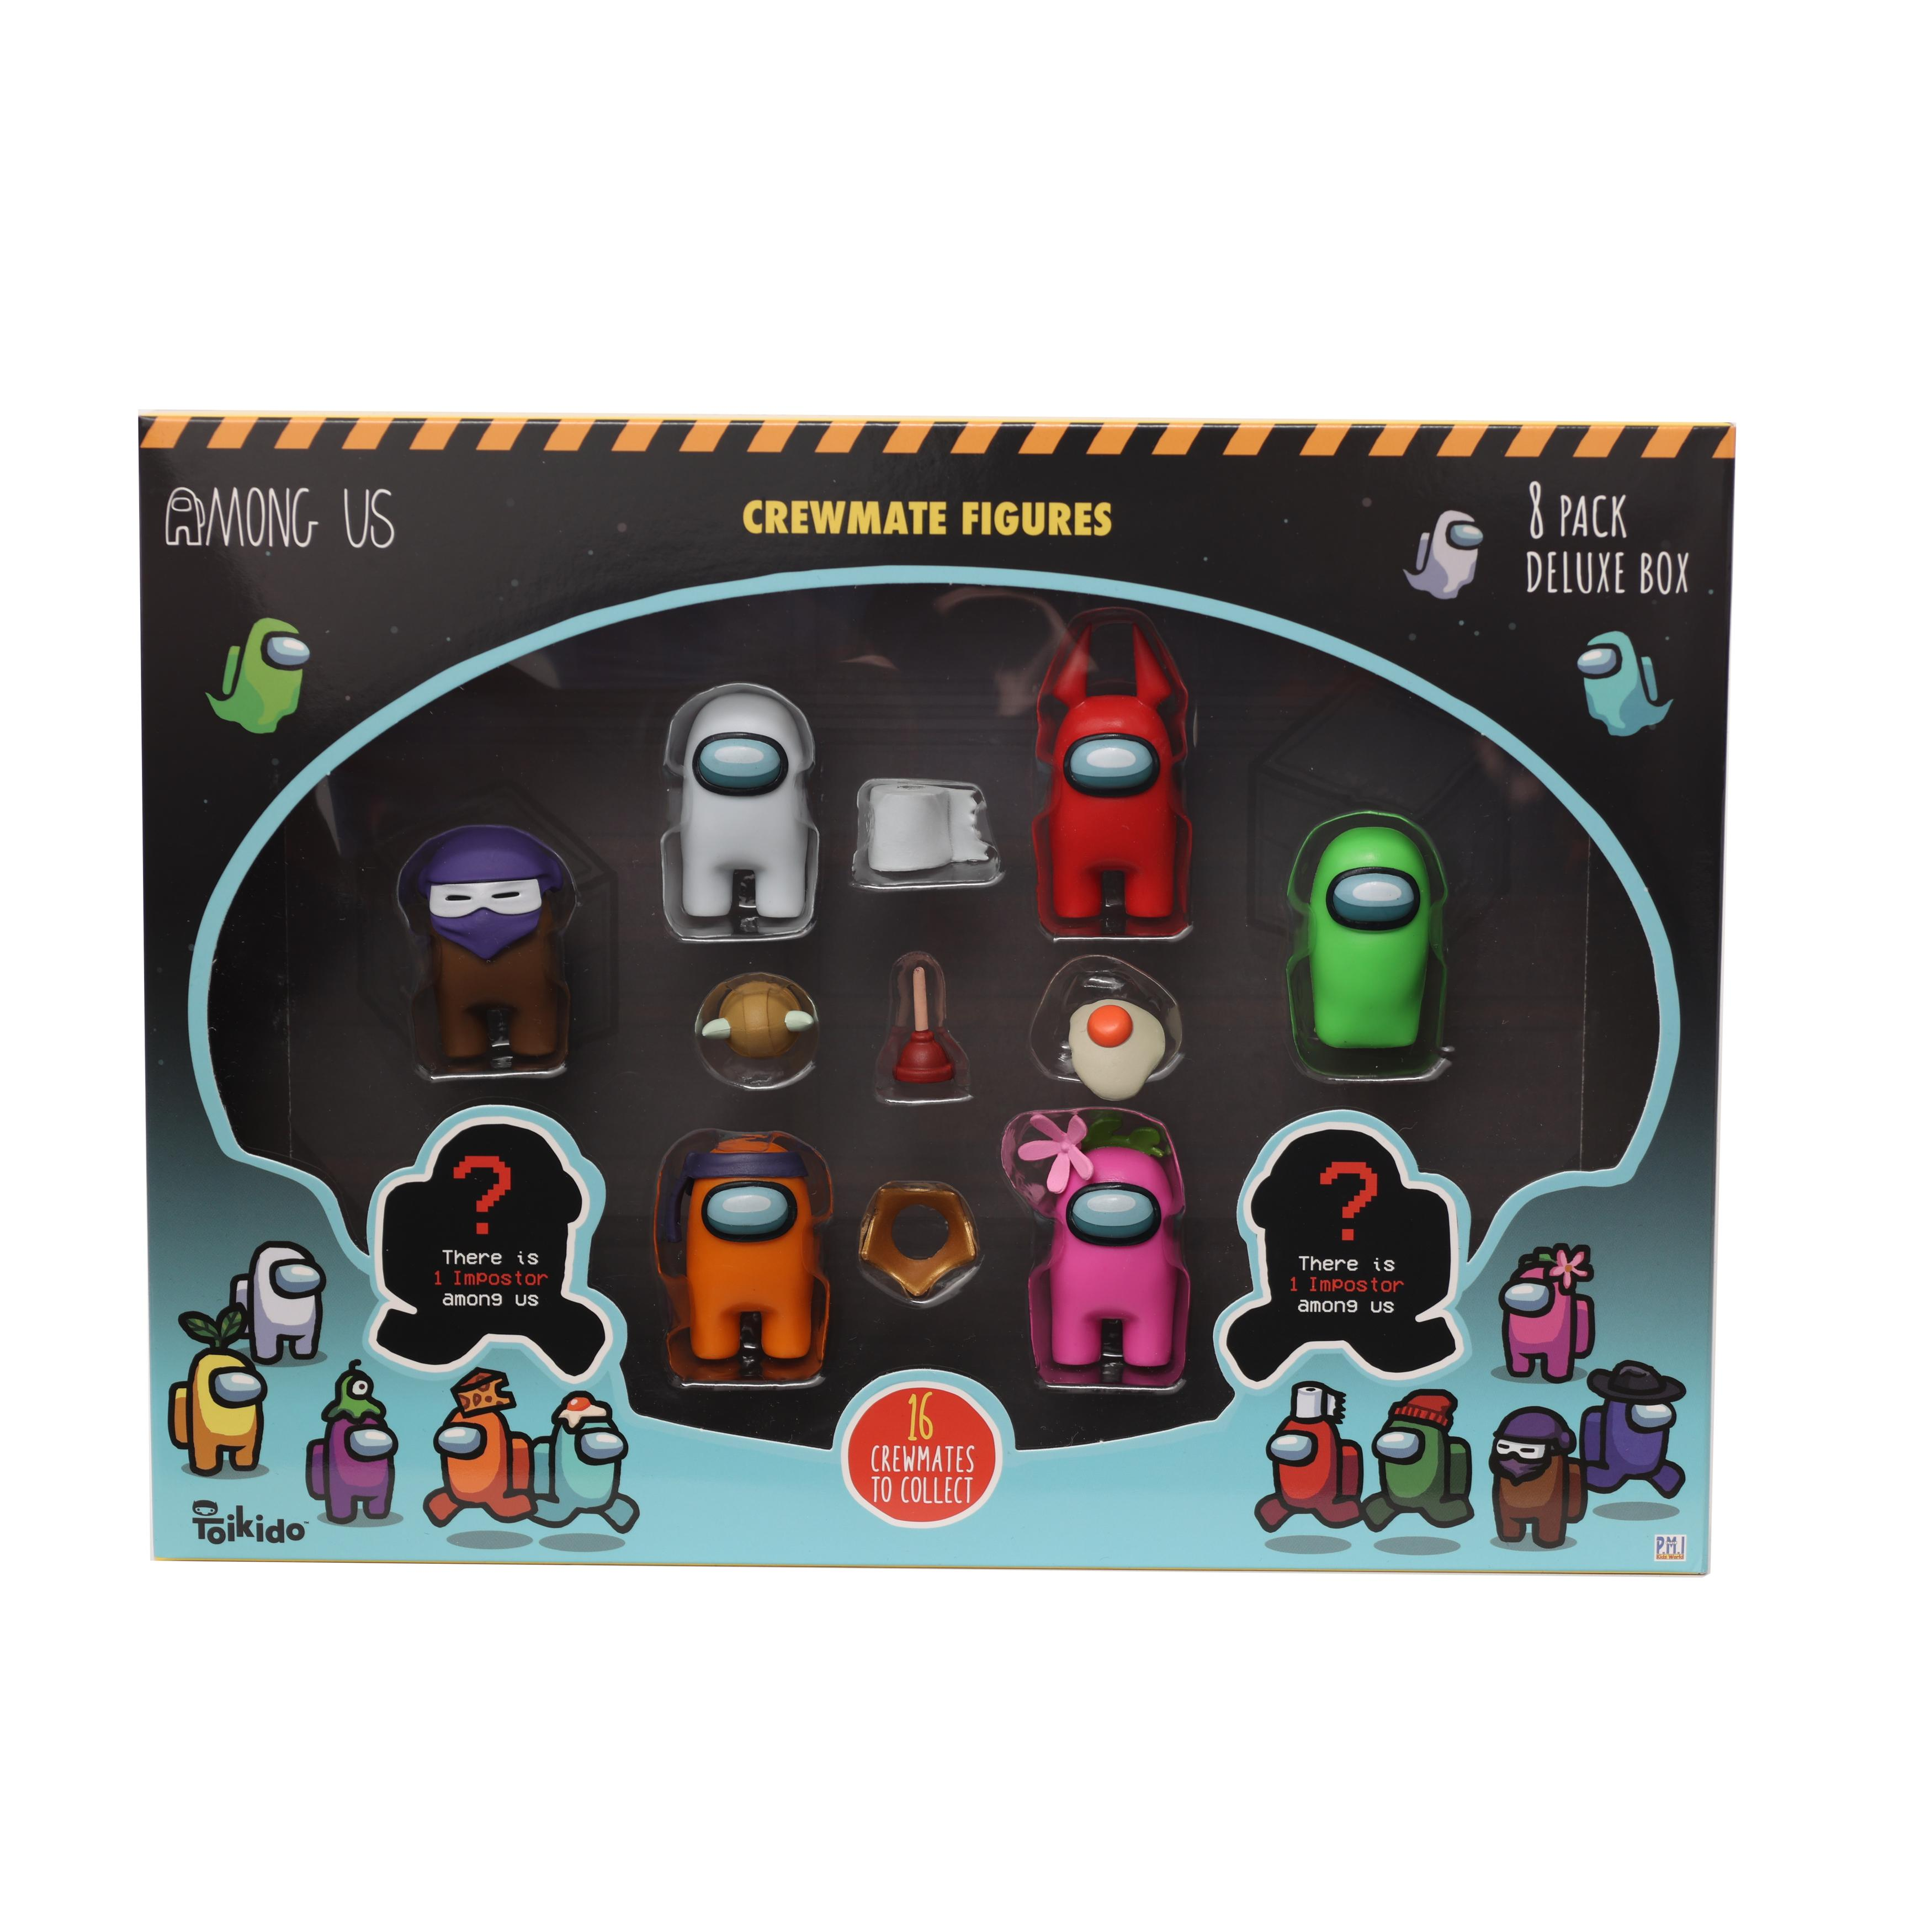 Among Us - Crewmate Figure 8 pack Deluxe (2070AU1)